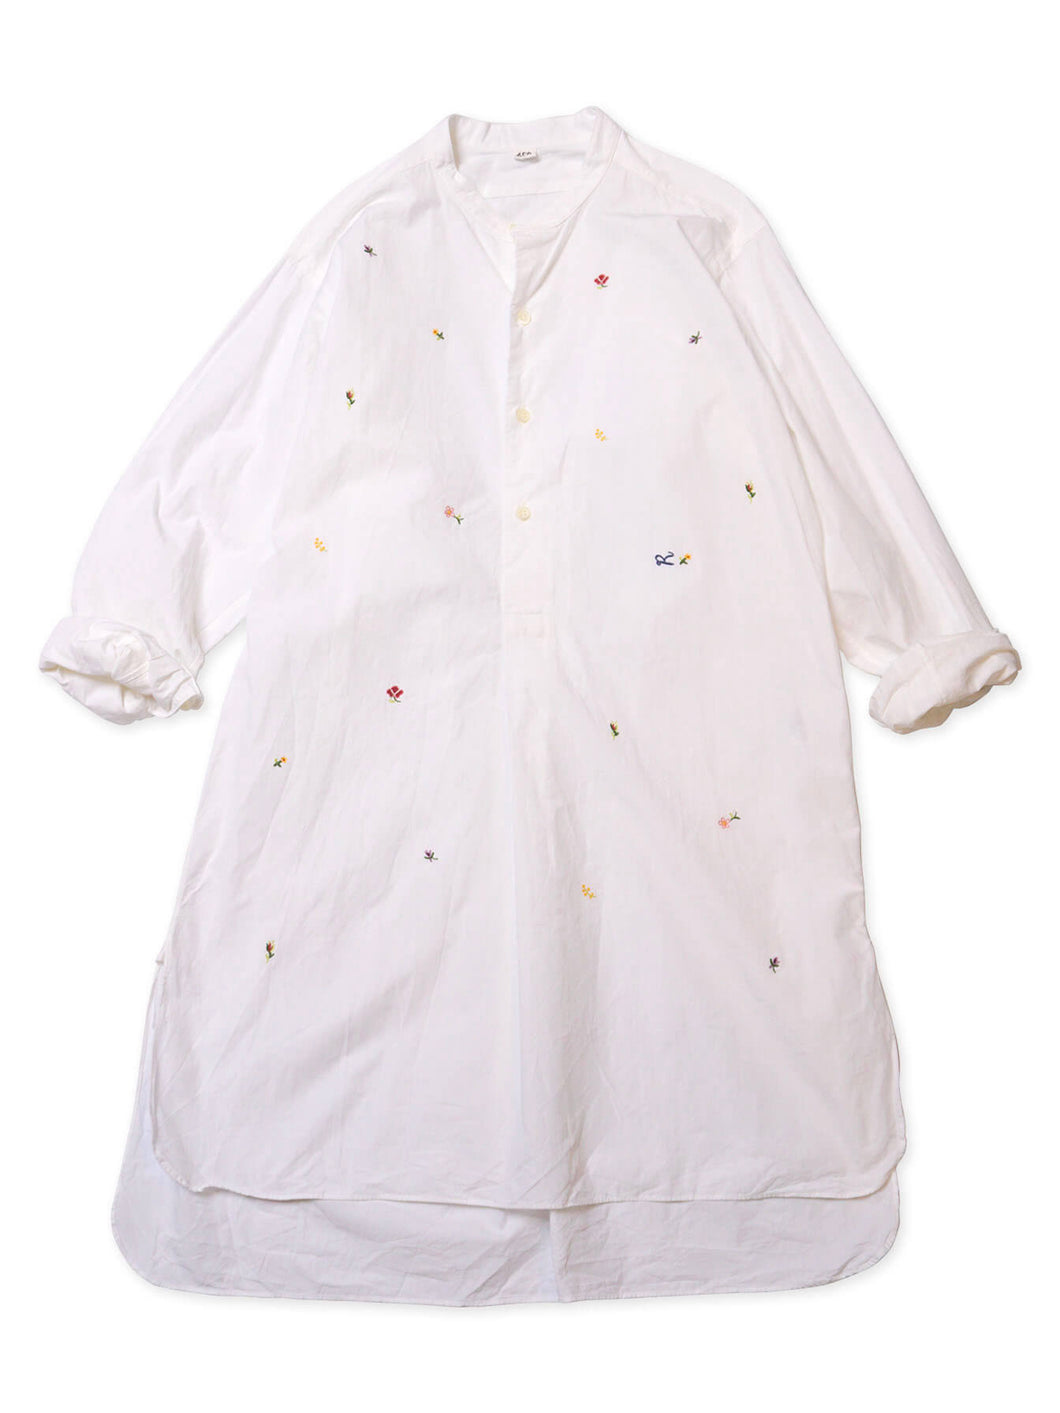 Damp Cotton Small Flower Embroidered Goo-Goo Shirt in white